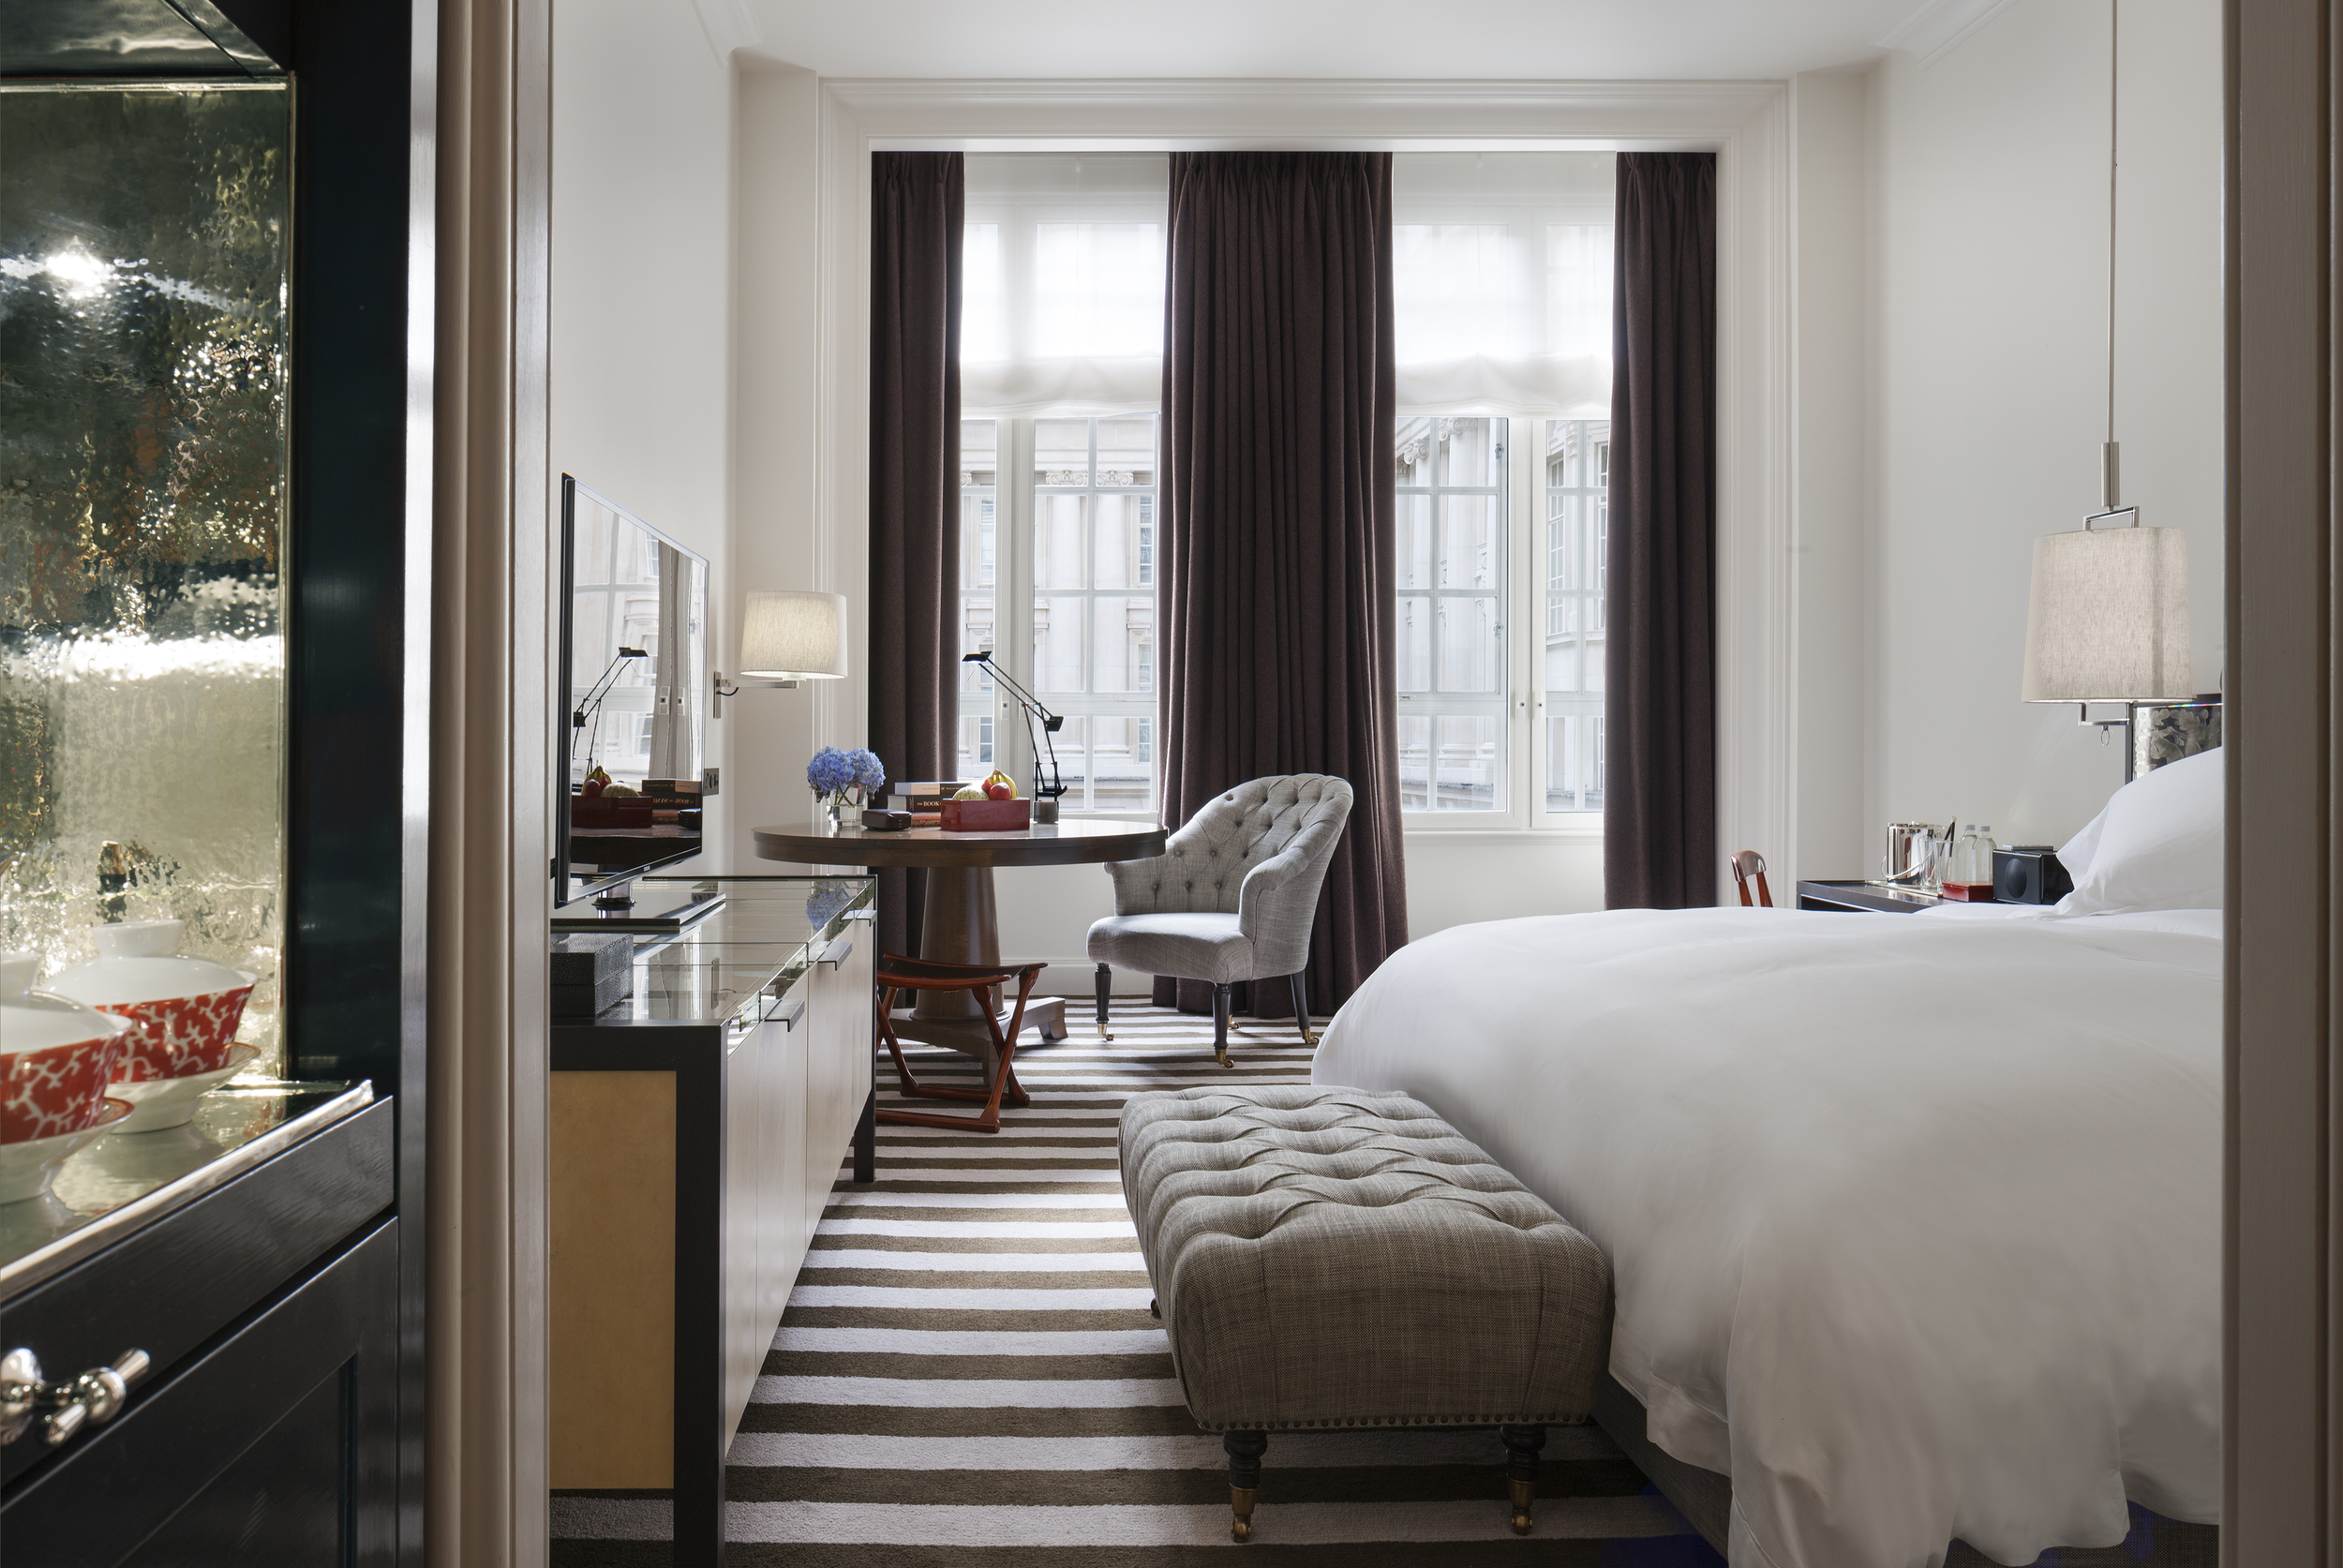 Hotel review: Rosewood London